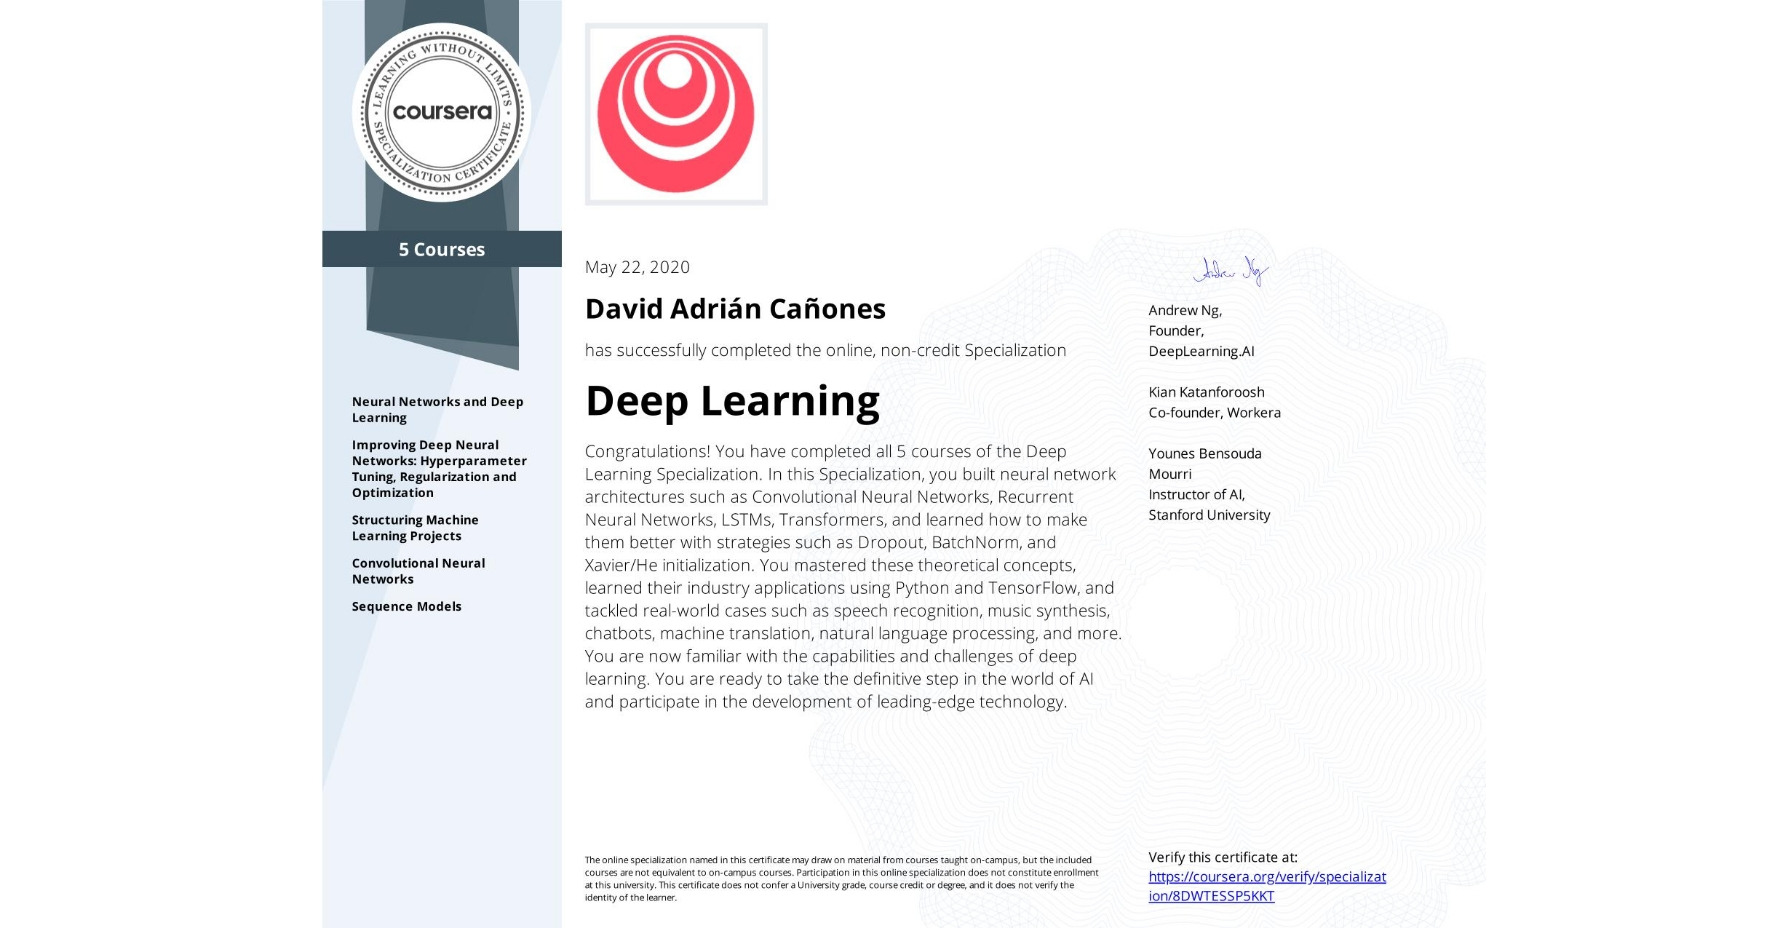 View certificate for David Adrián Cañones, Deep Learning, offered through Coursera. The Deep Learning Specialization is designed to prepare learners to participate in the development of cutting-edge AI technology, and to understand the capability, the challenges, and the consequences of the rise of deep learning. Through five interconnected courses, learners develop a profound knowledge of the hottest AI algorithms, mastering deep learning from its foundations (neural networks) to its industry applications (Computer Vision, Natural Language Processing, Speech Recognition, etc.).